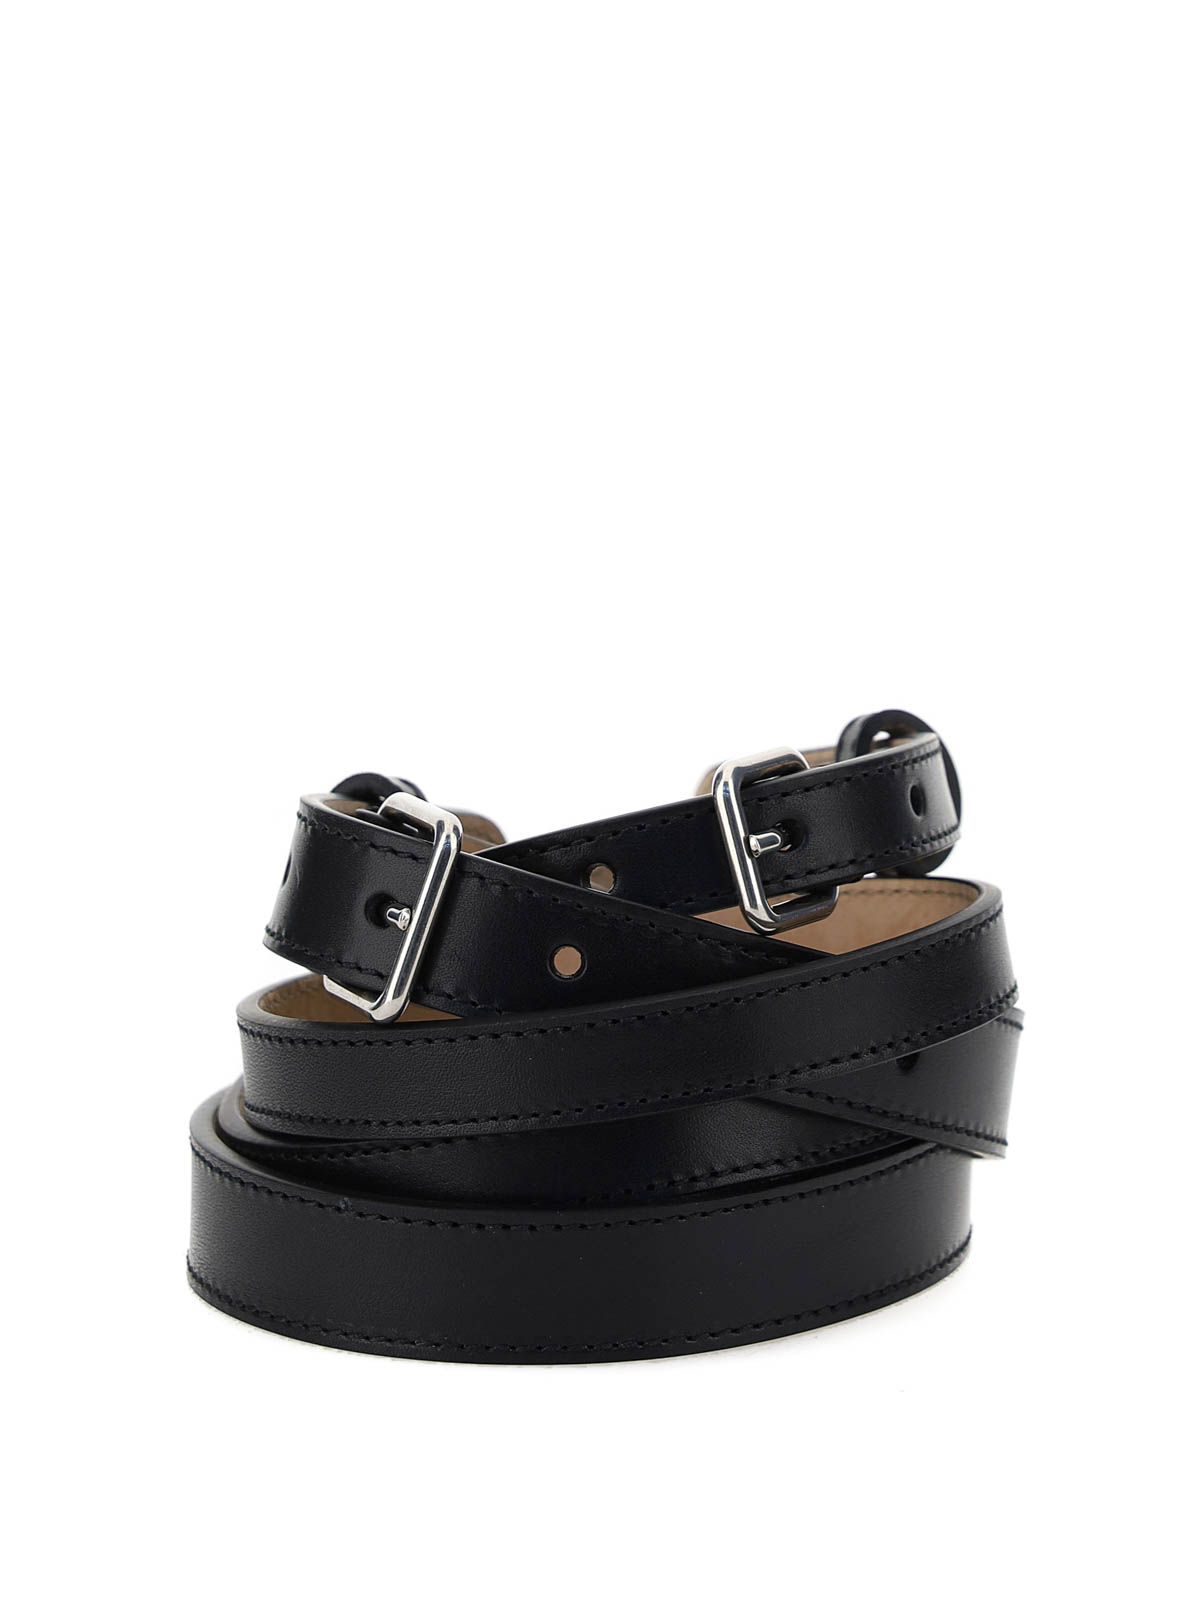 Alexander Mcqueen DOUBLE BELT